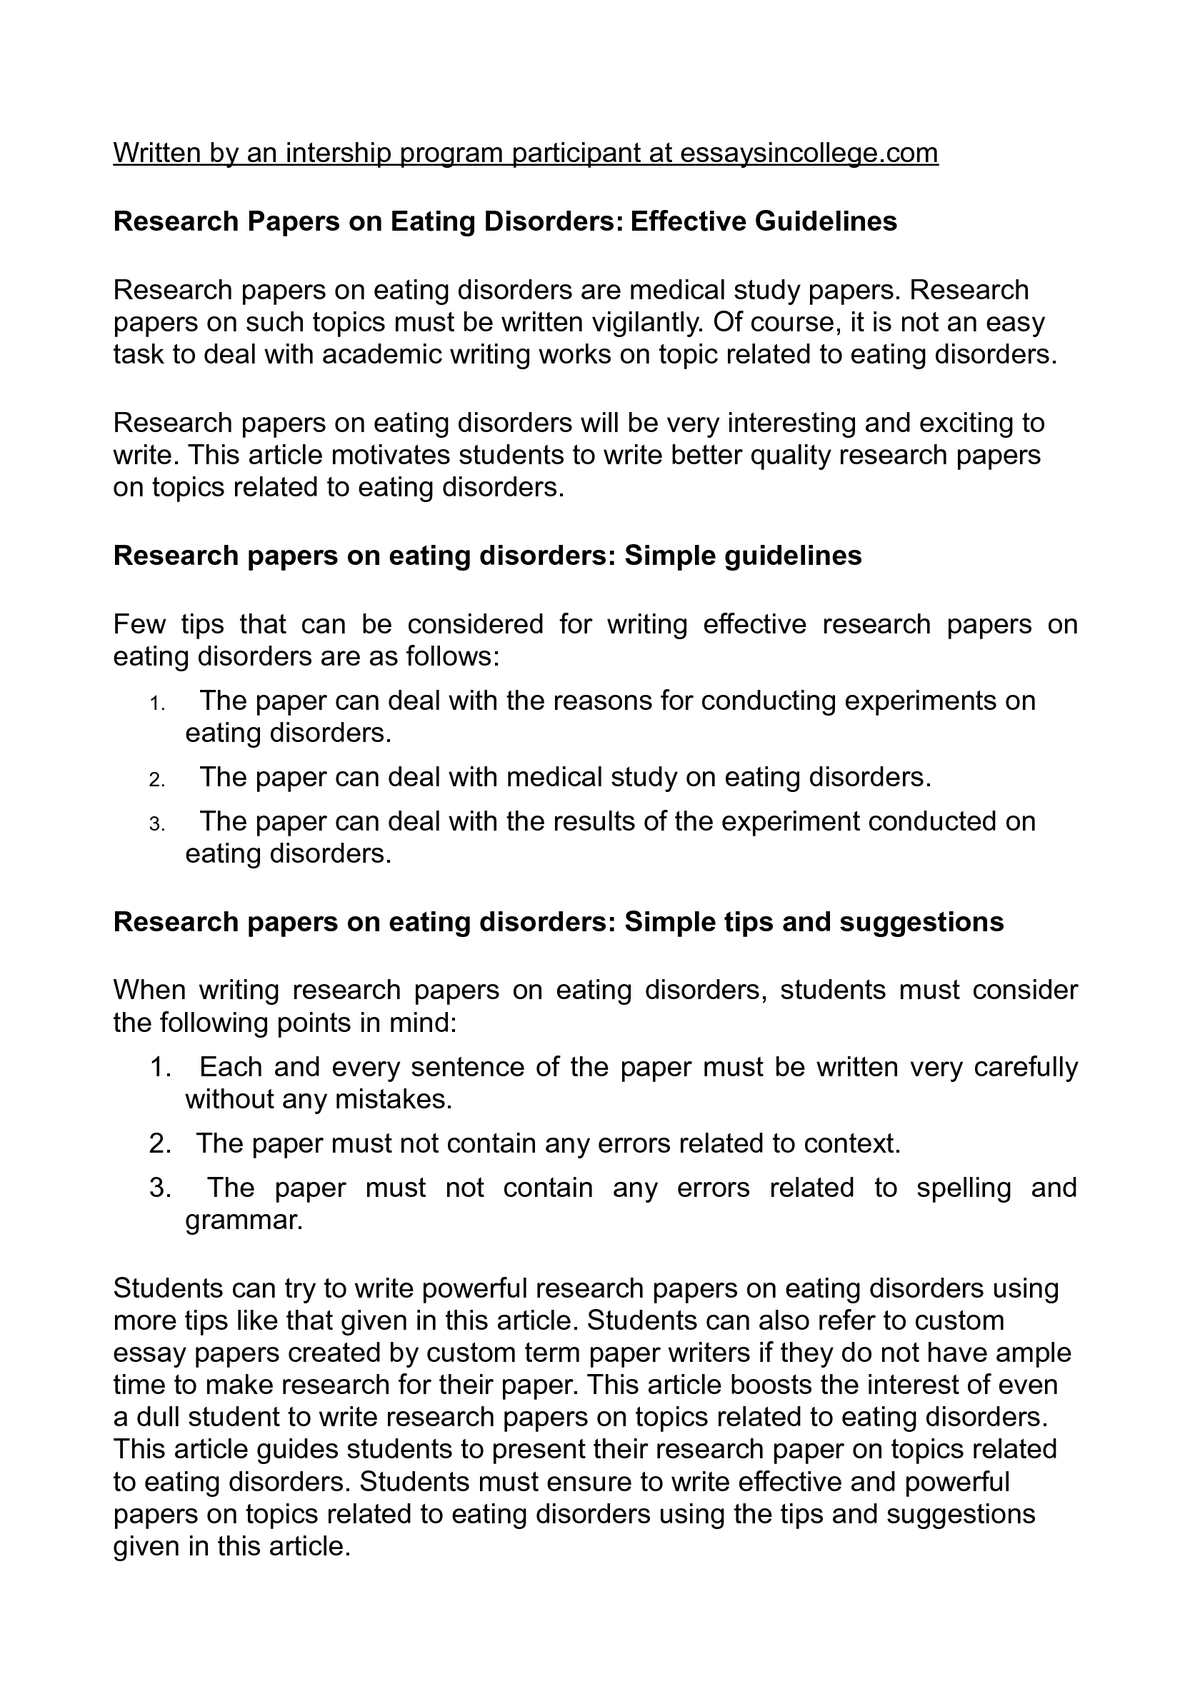 018 Research Paper On Eating Disorders Wonderful And The Media Psychological Essay Full